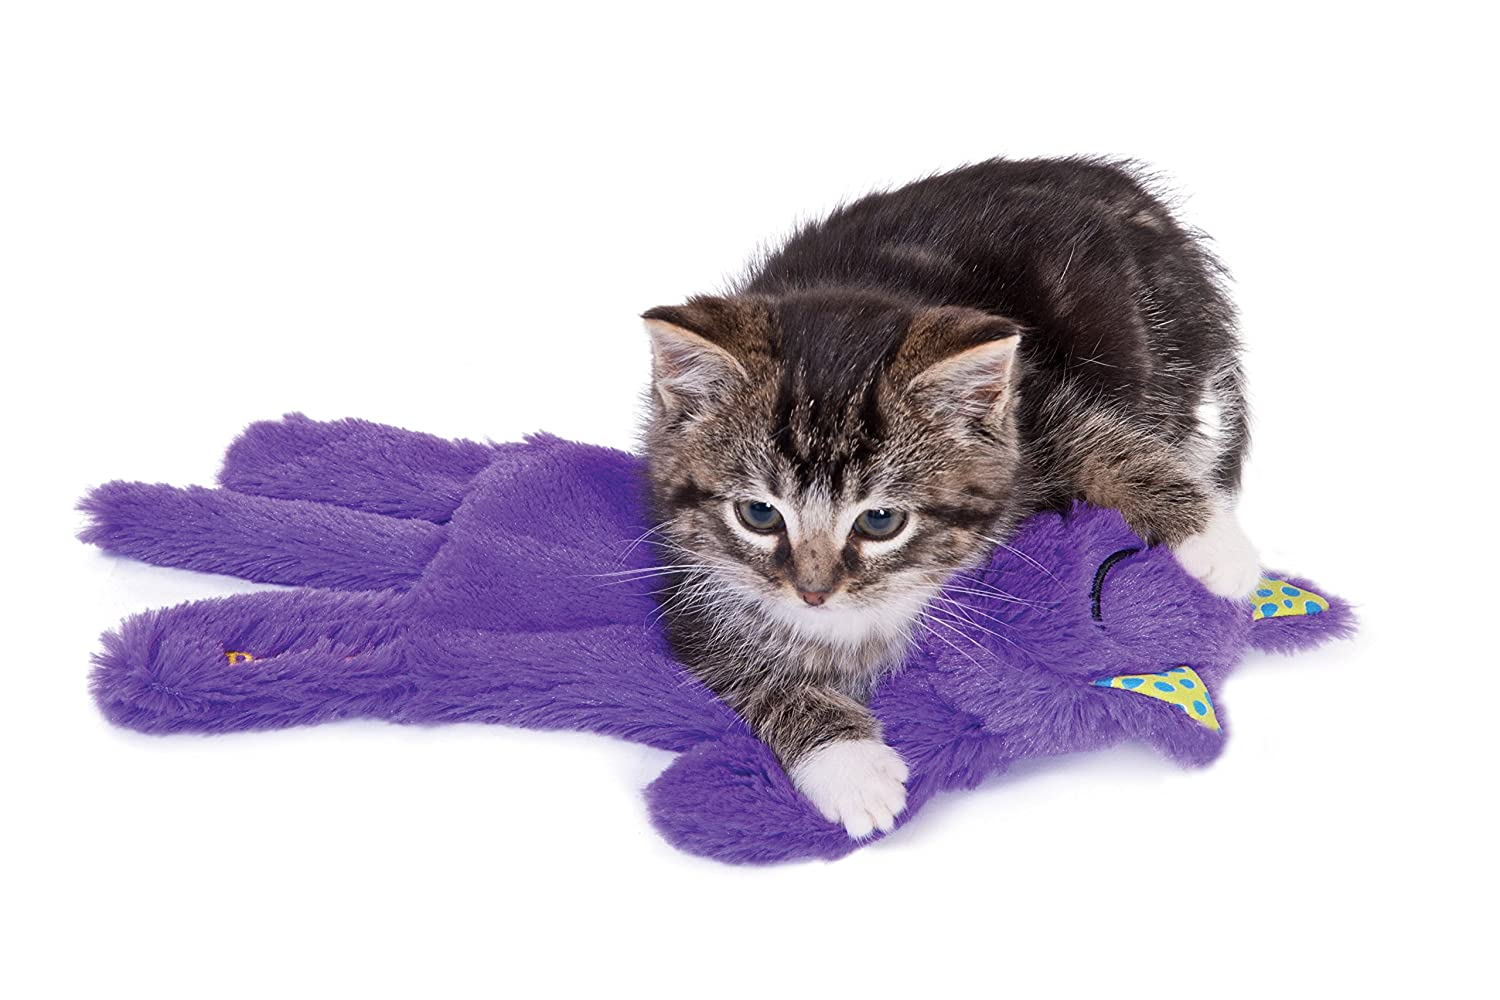 Image result for petstages KITTY CUDDLE PAL